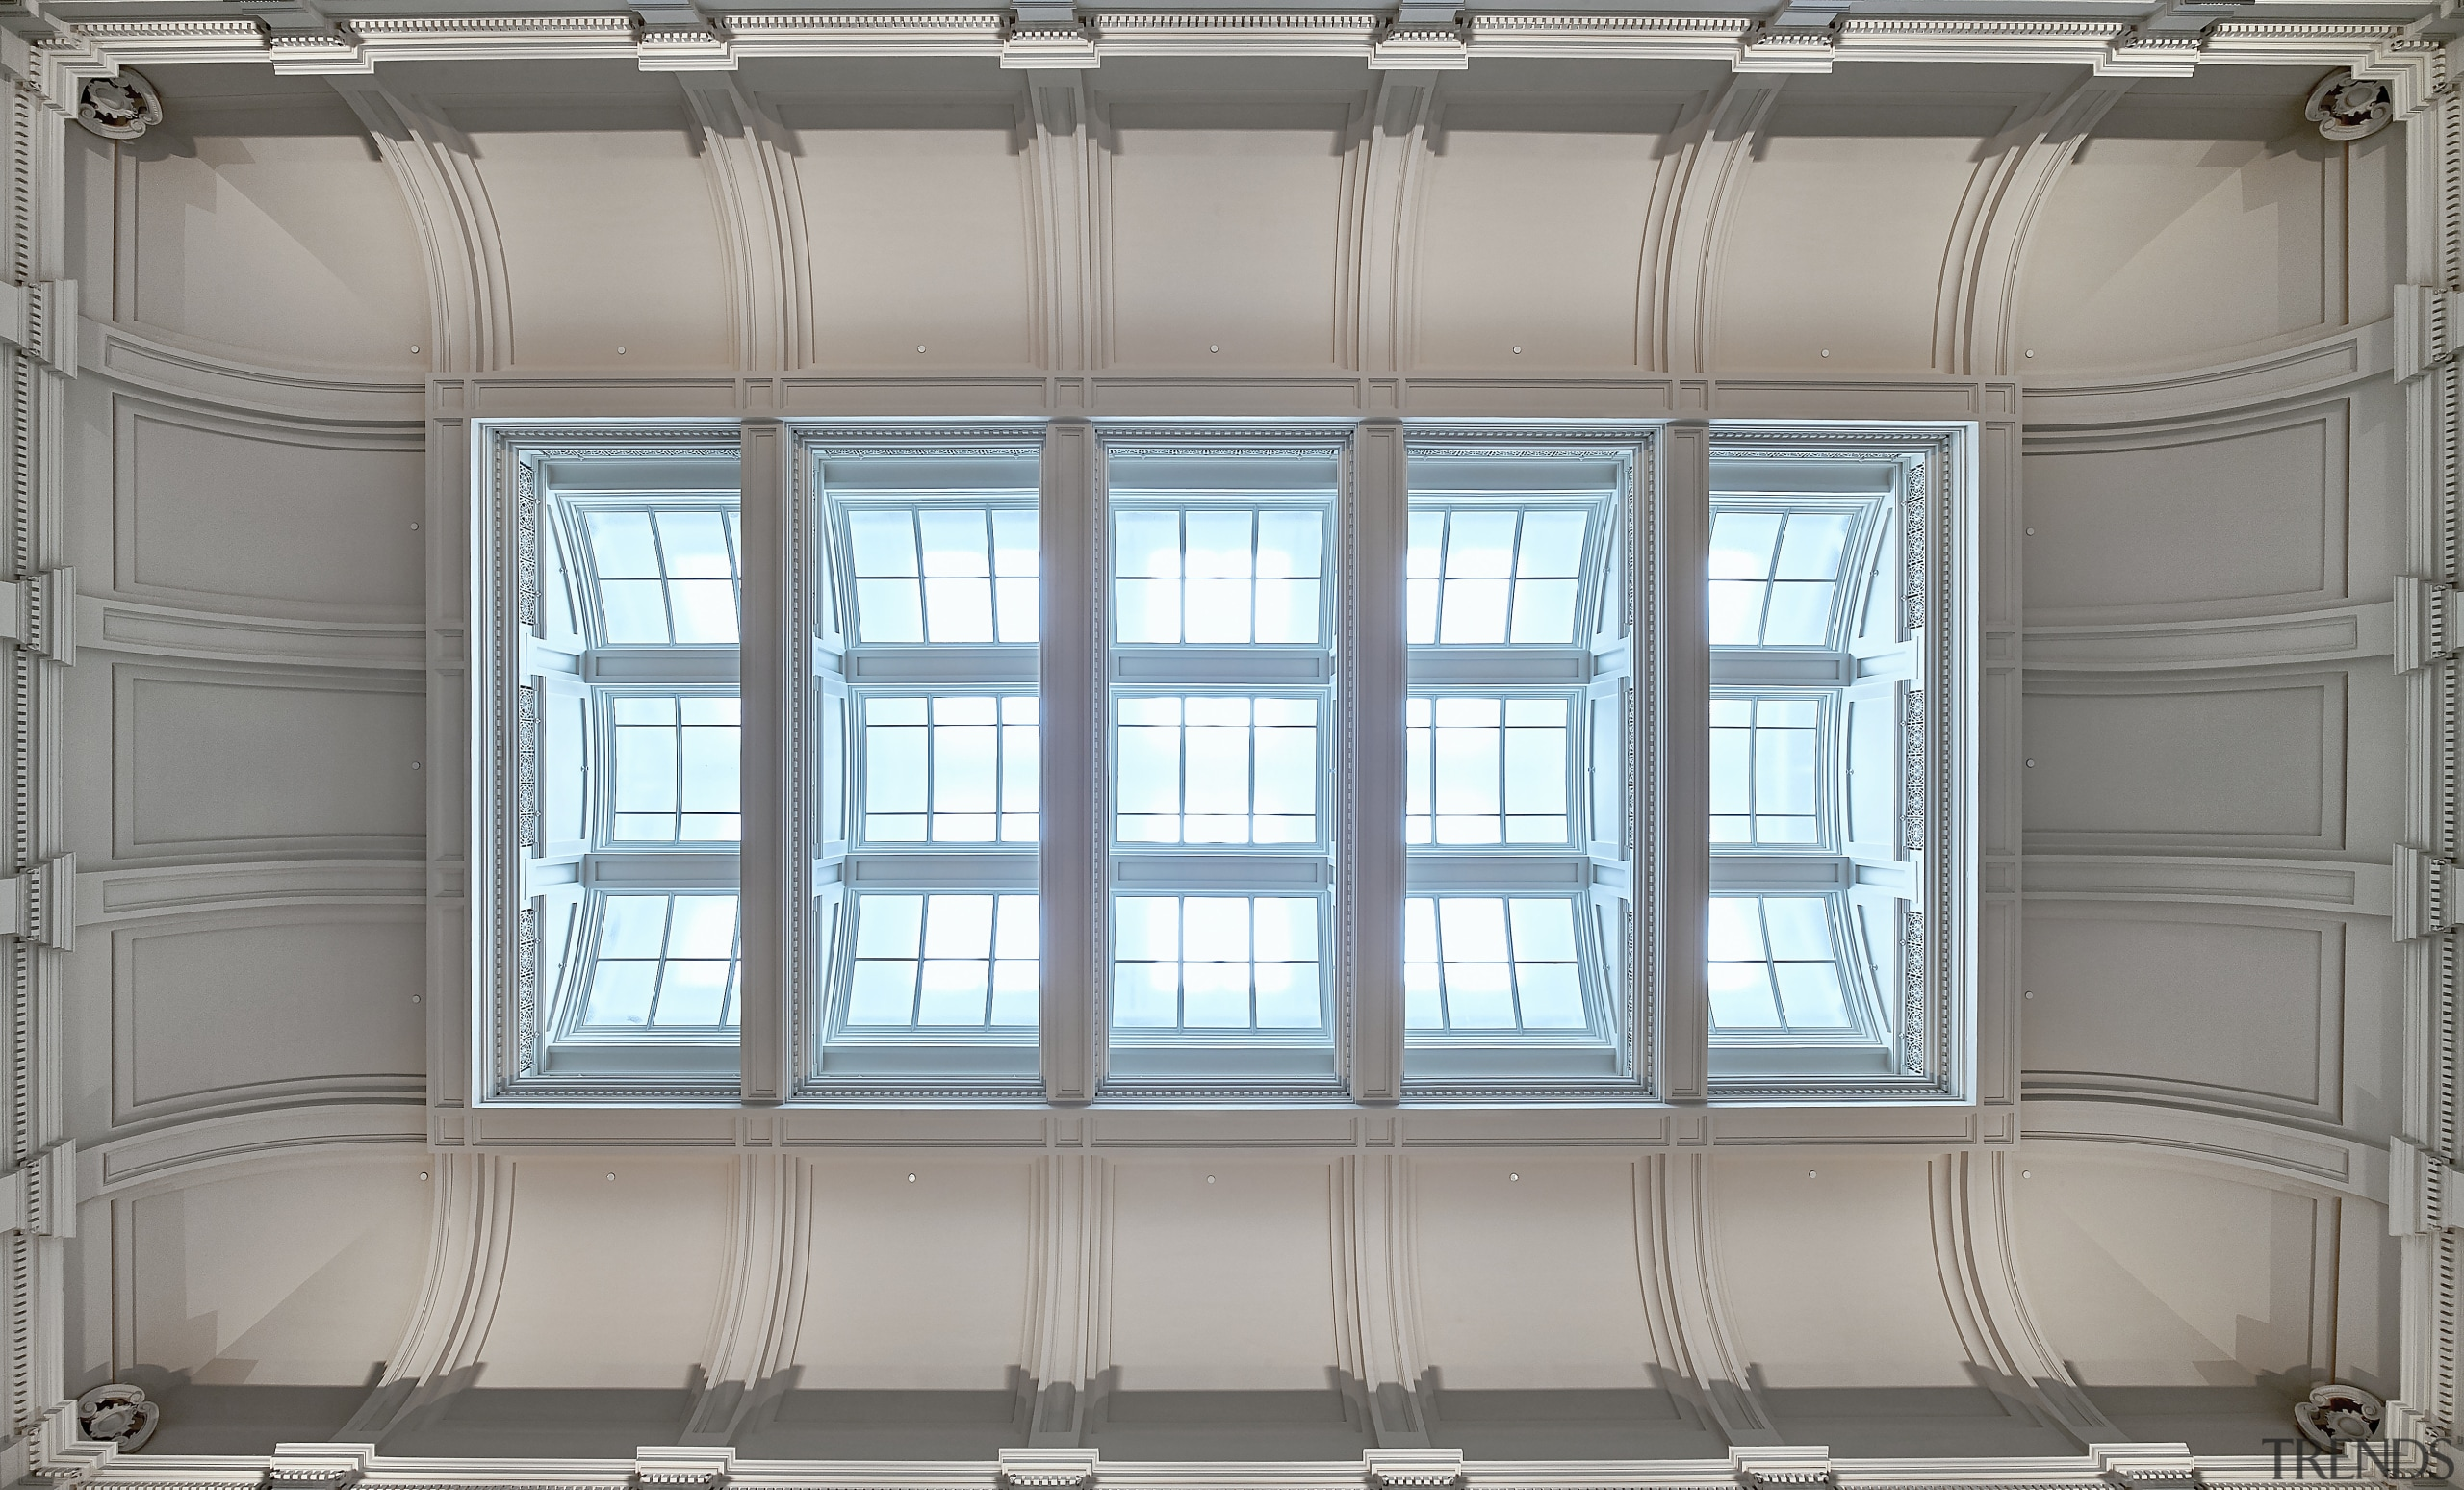 The Postal Hall in Perths 19th Century GPO architecture, daylighting, facade, home, interior design, structure, wall, window, gray